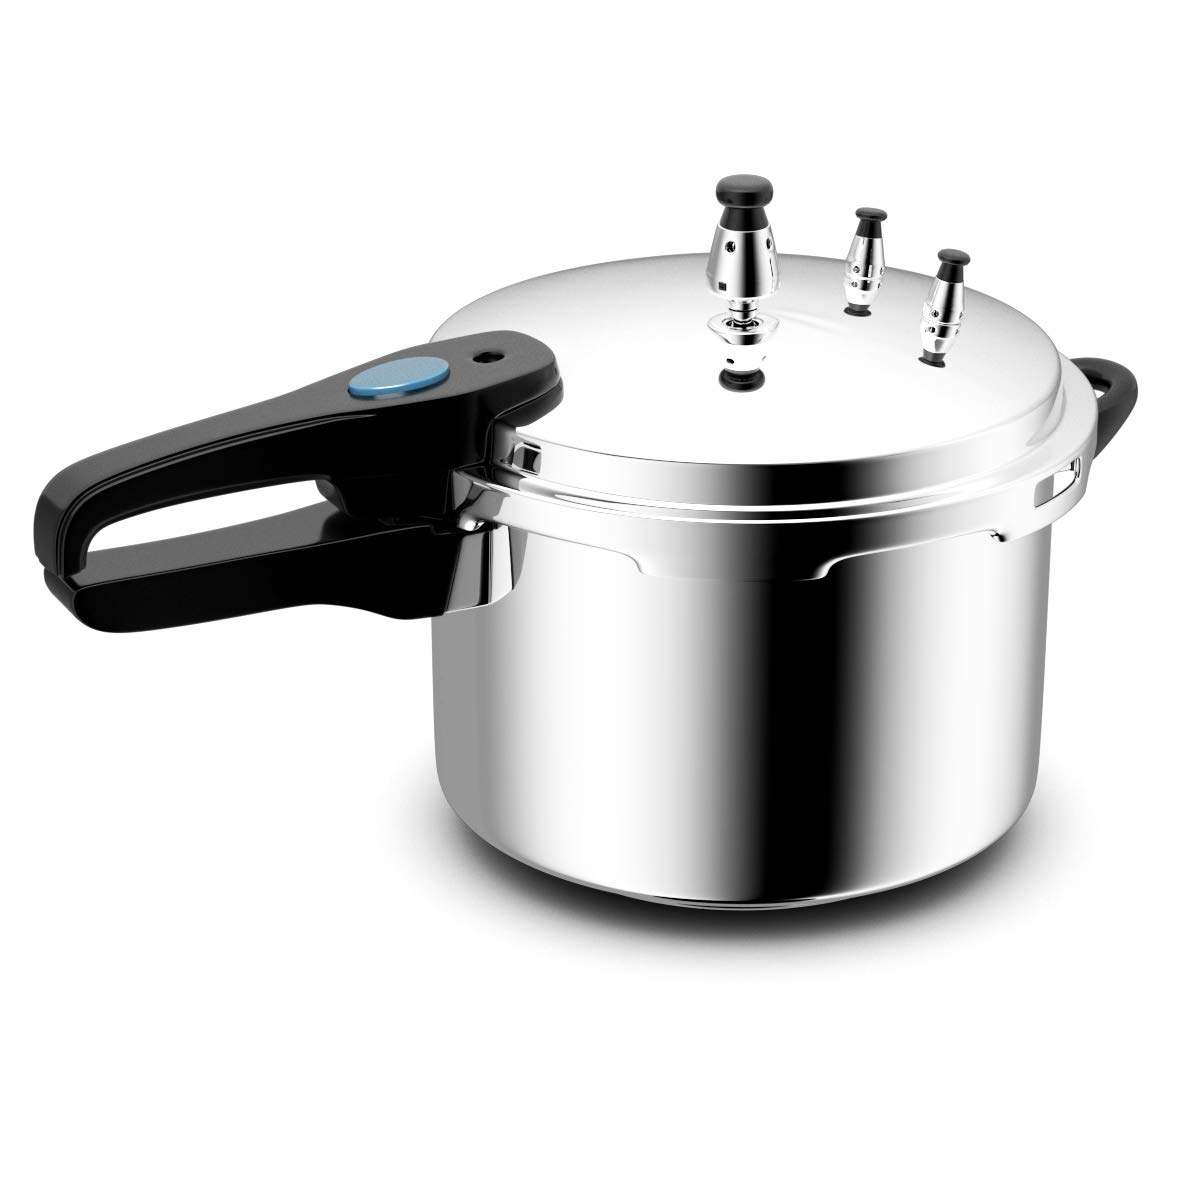 Giantex 6-Quart Aluminum Pressure Cooker Fast Cooker Home Kitchen Pot for Rice or Soup by Giantex